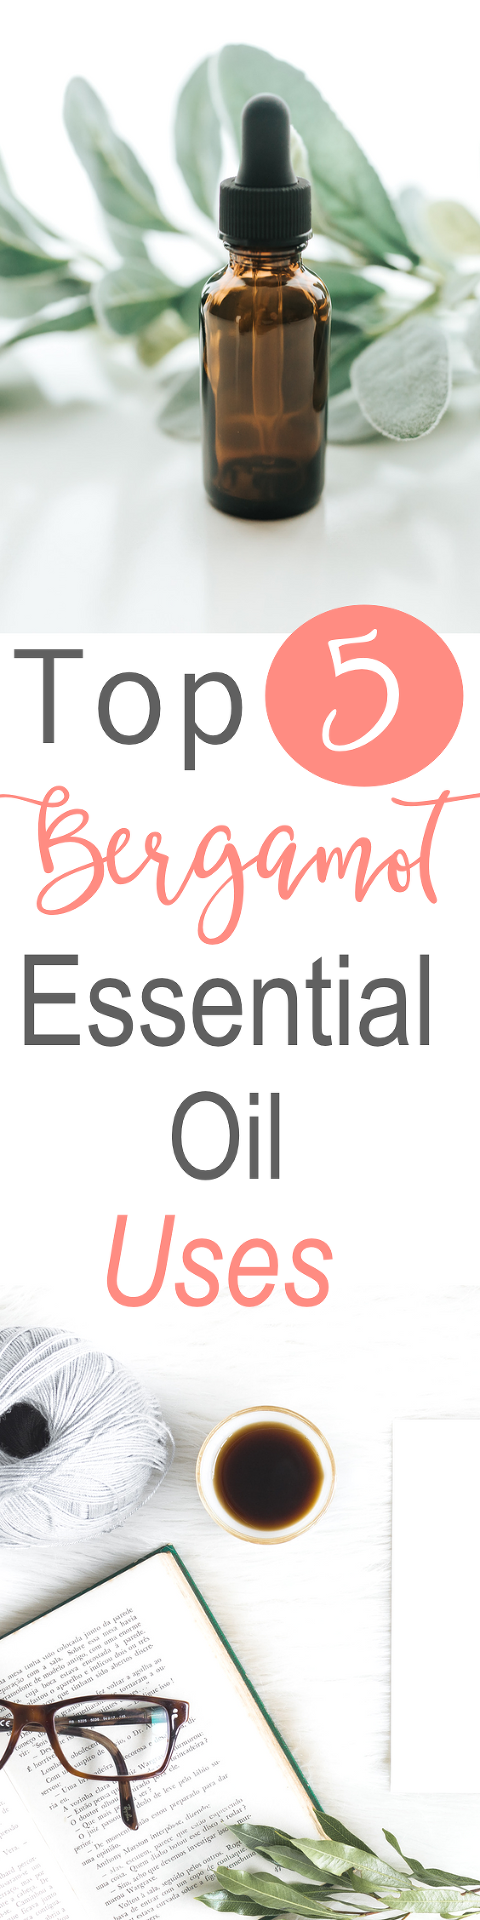 There are so many ways to use essential oils. Bergamot essential oil offers some great therapeutic benefits. Here are the top 5 bergamot essential oil uses and benefits! Read now or pin for later! // www.simplyreeni.com